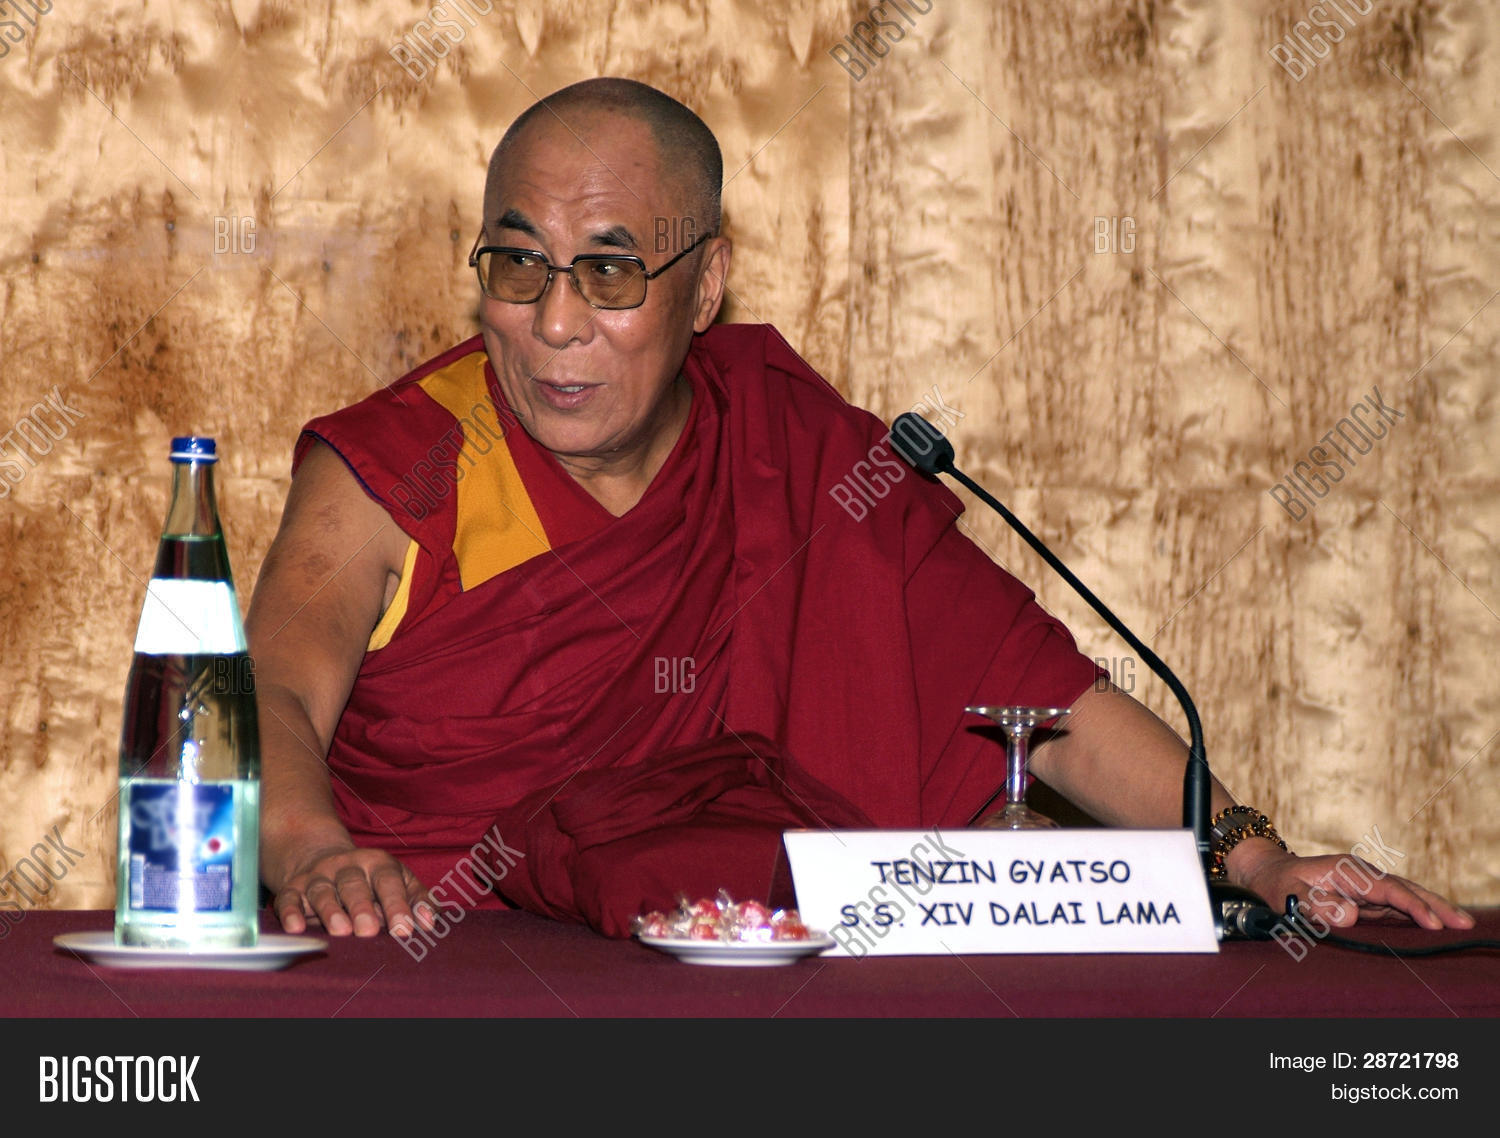 dalai lama essay essay Tibetan buddhist leader 14 th dalai lama essay tibetan buddhist leader 14 th dalai lama essay the dalai lama has been both the temporal and the spiritual leader of tibet since the 16th century.